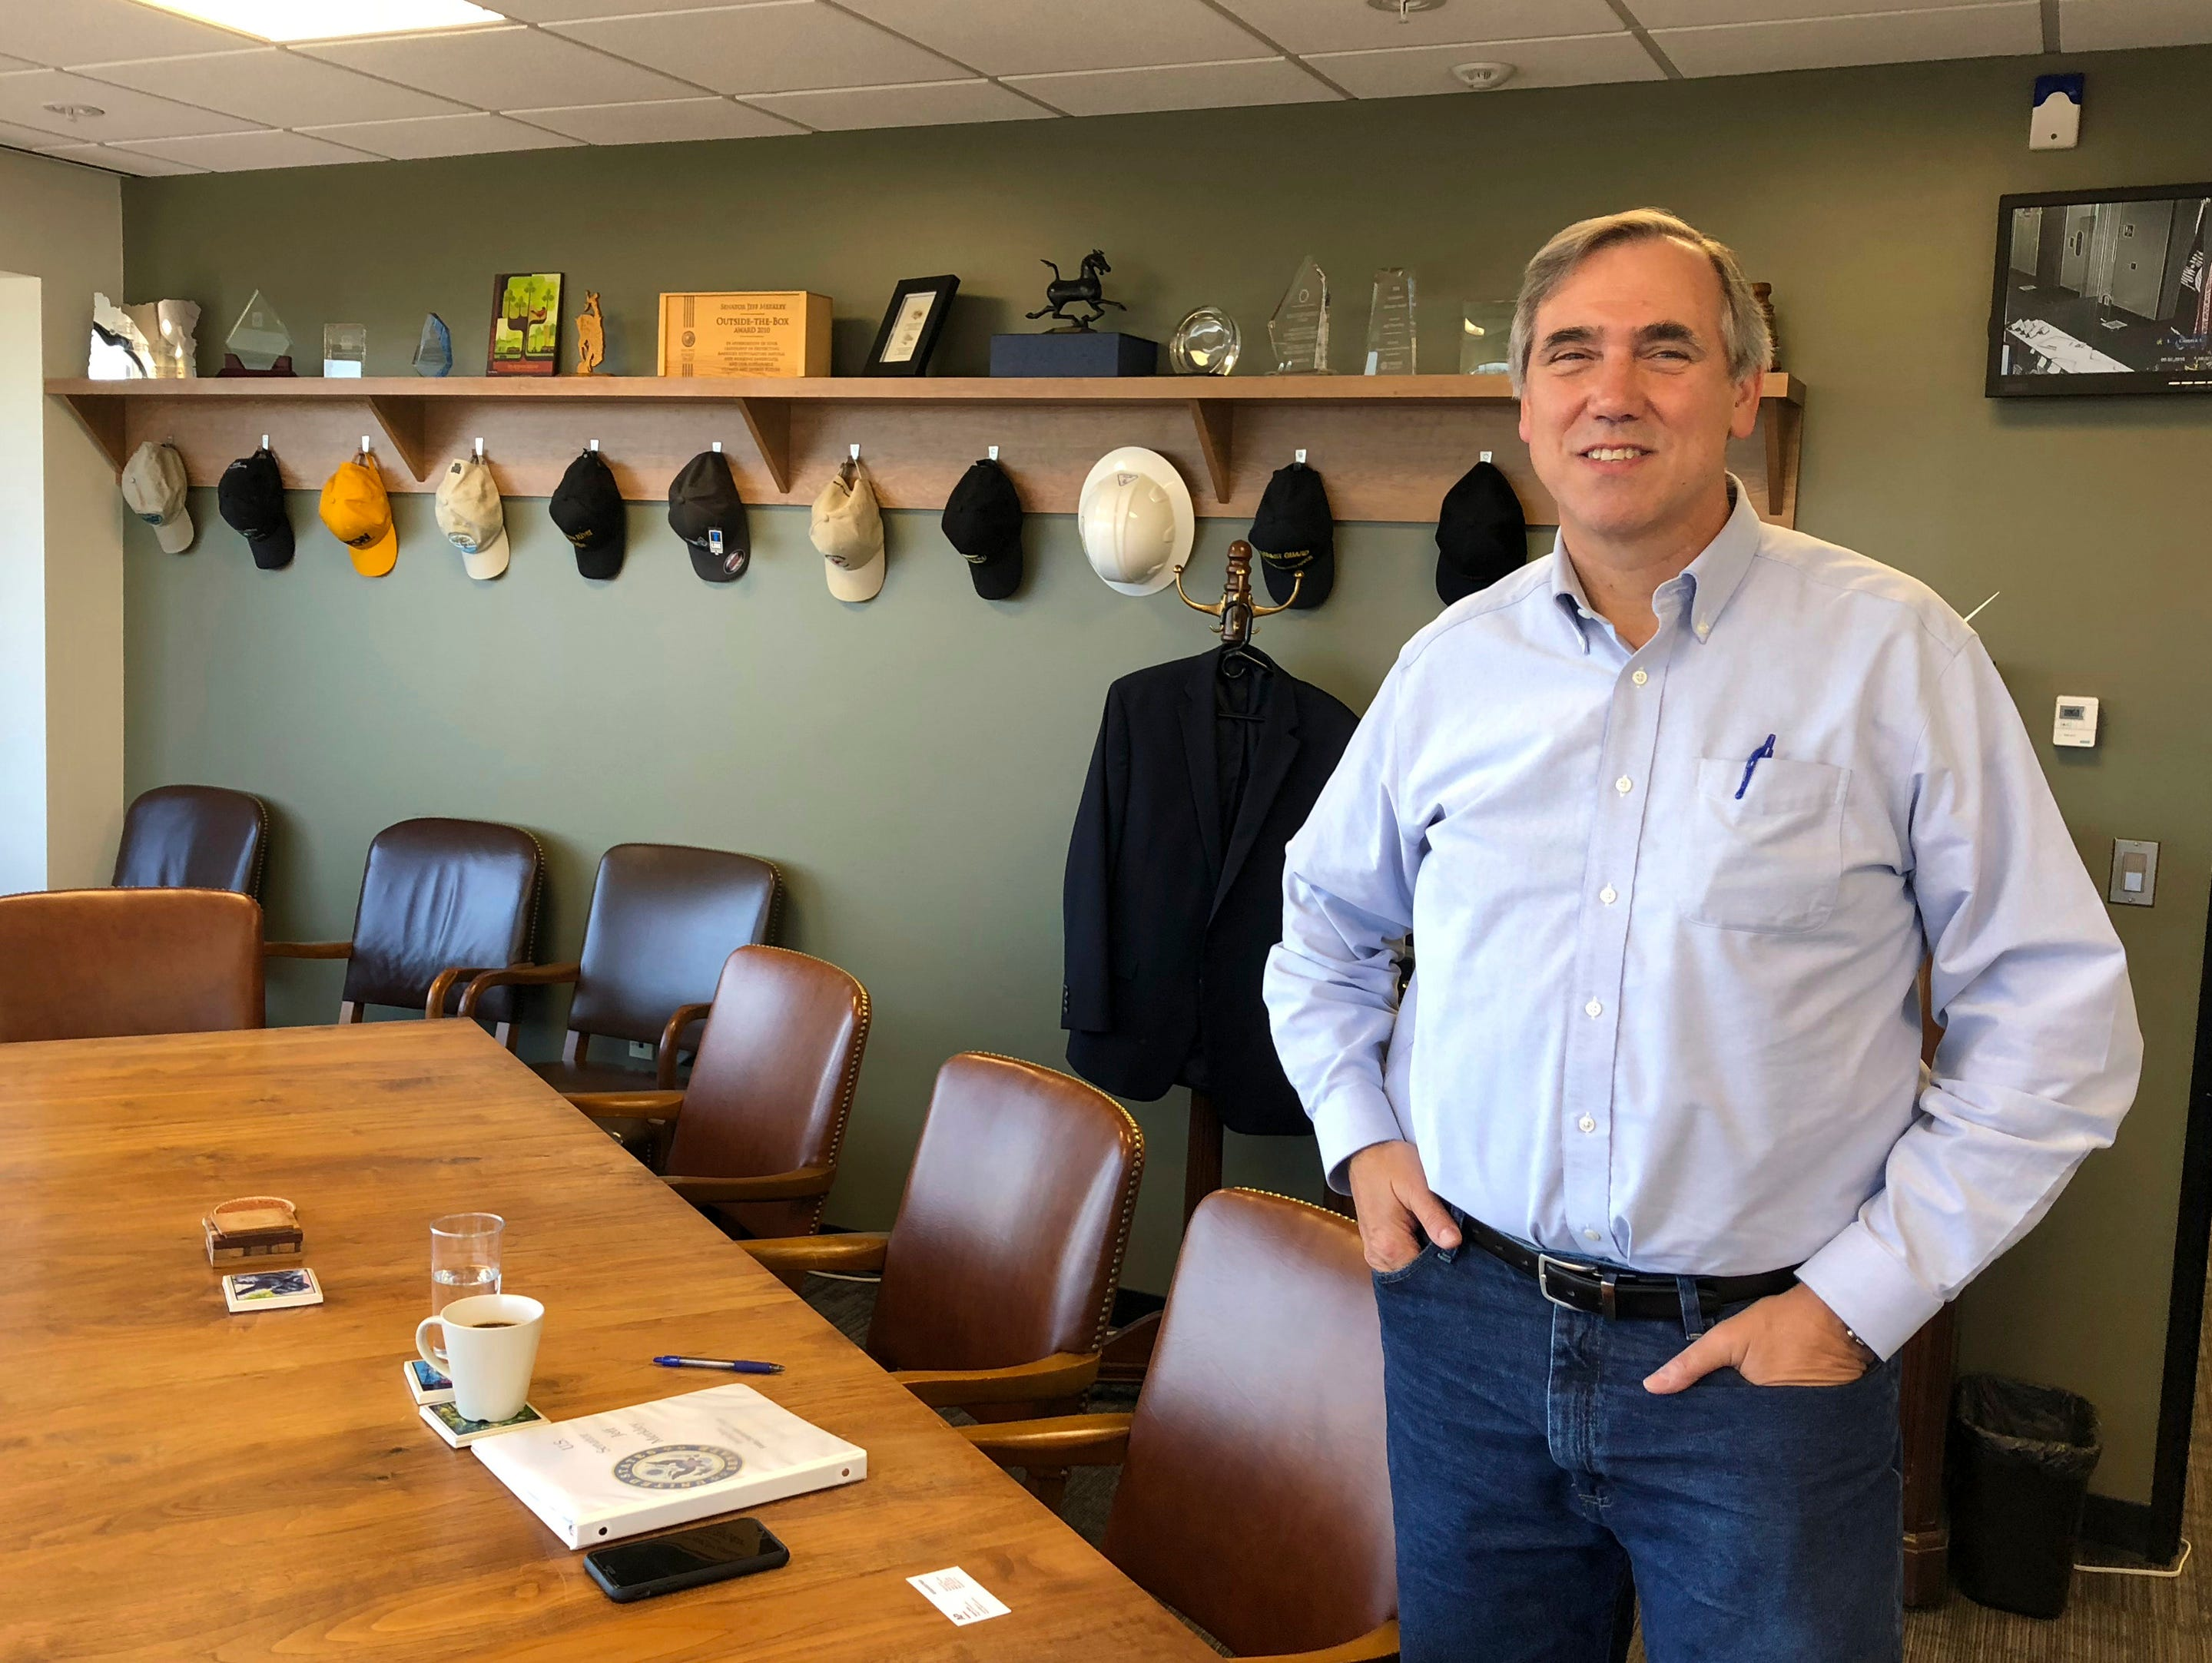 Sen Jeff Merkley, D-Ore., poses for a photo in his office in Portland, Ore., Sept. 7, 2018. Merkley, a frequent critic of President Donald Trump, is seriously considering a run for the White House.